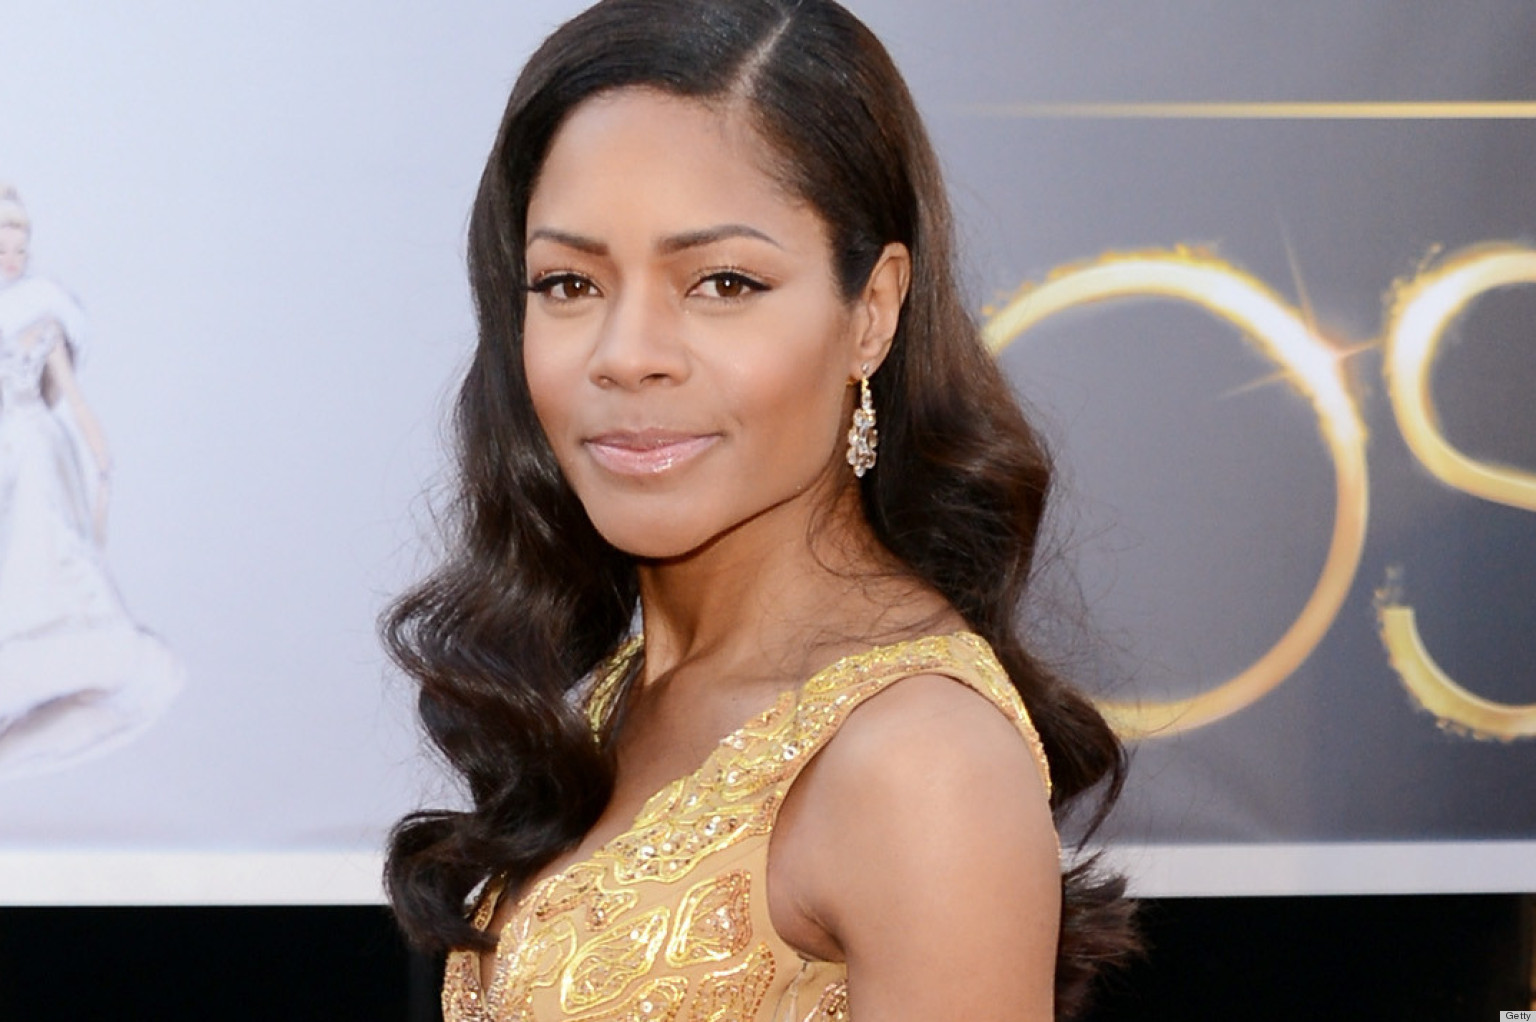 PHOTOS: Naomie Harris' Oscar Dress Features Way Too Much Leg For Our Comfort